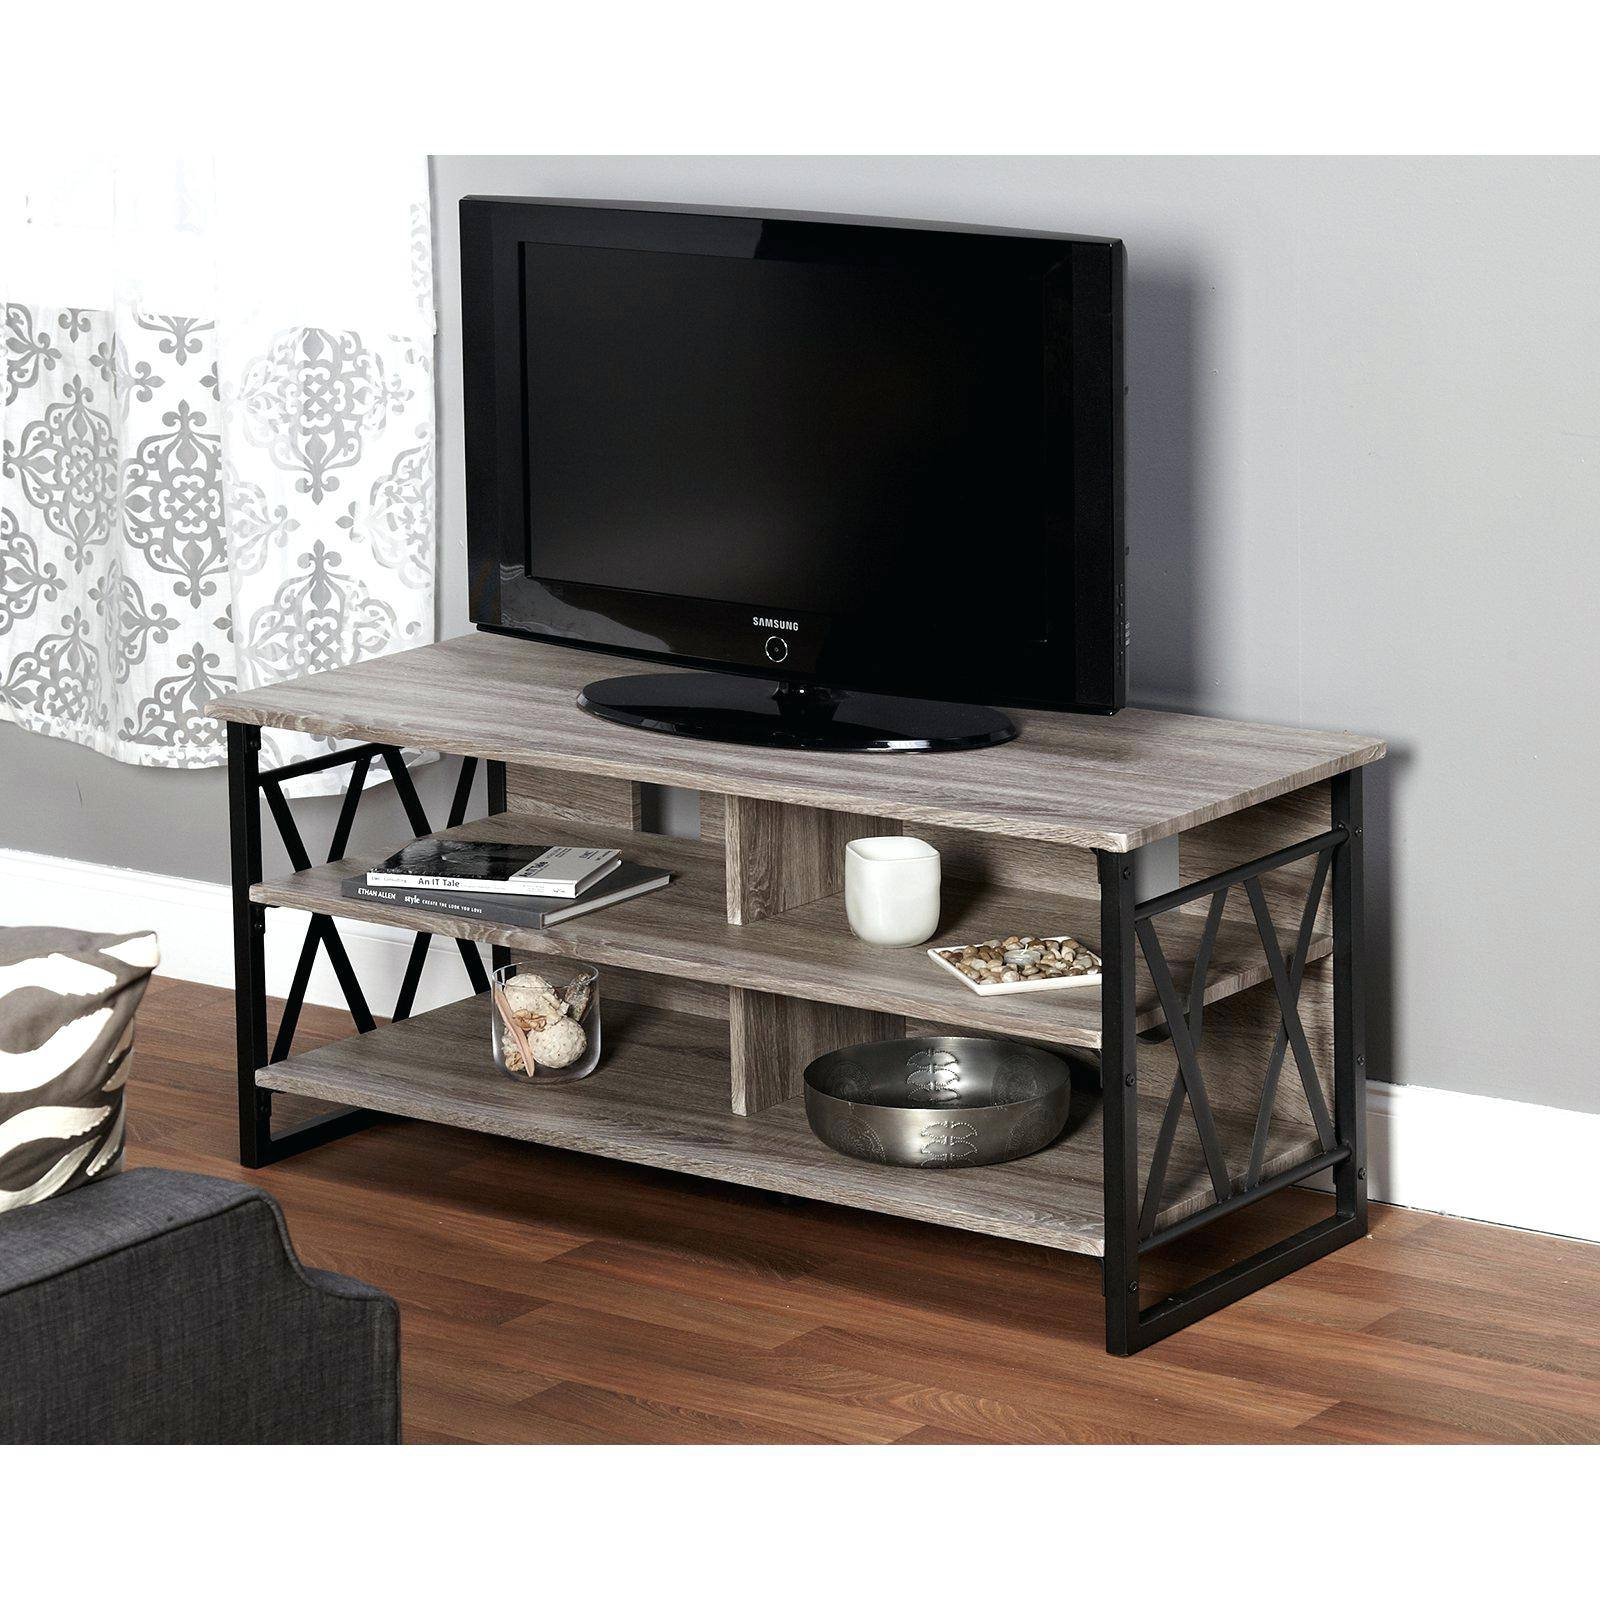 Tv Stand : Amazing Techlink Echo Tv Stand Techlink Echo Tv Stand Pertaining To Ovid White Tv Stand (View 7 of 15)